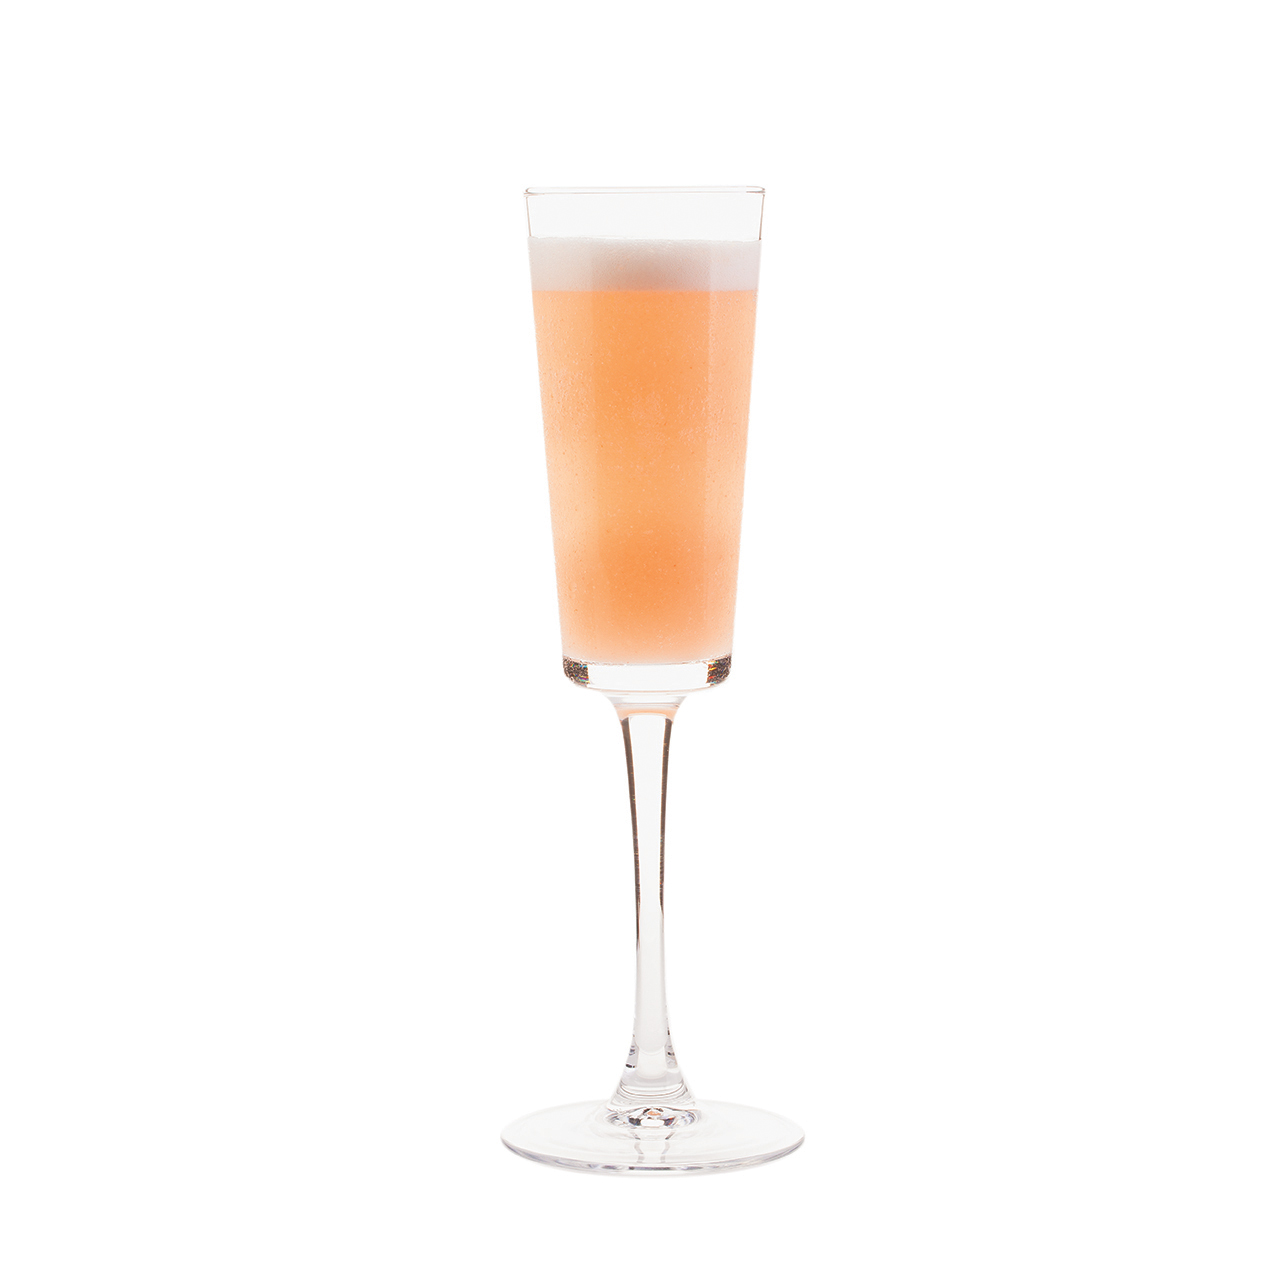 THE FELLINI - 1 part KLEOS Mastiha Spirit1 1⁄2 parts Boiron Peach Pureé1⁄4 part simple syrupShake all ingredients. Strain into a flute. Top with prosecco.                                                                             For the cinephiles who brunch.